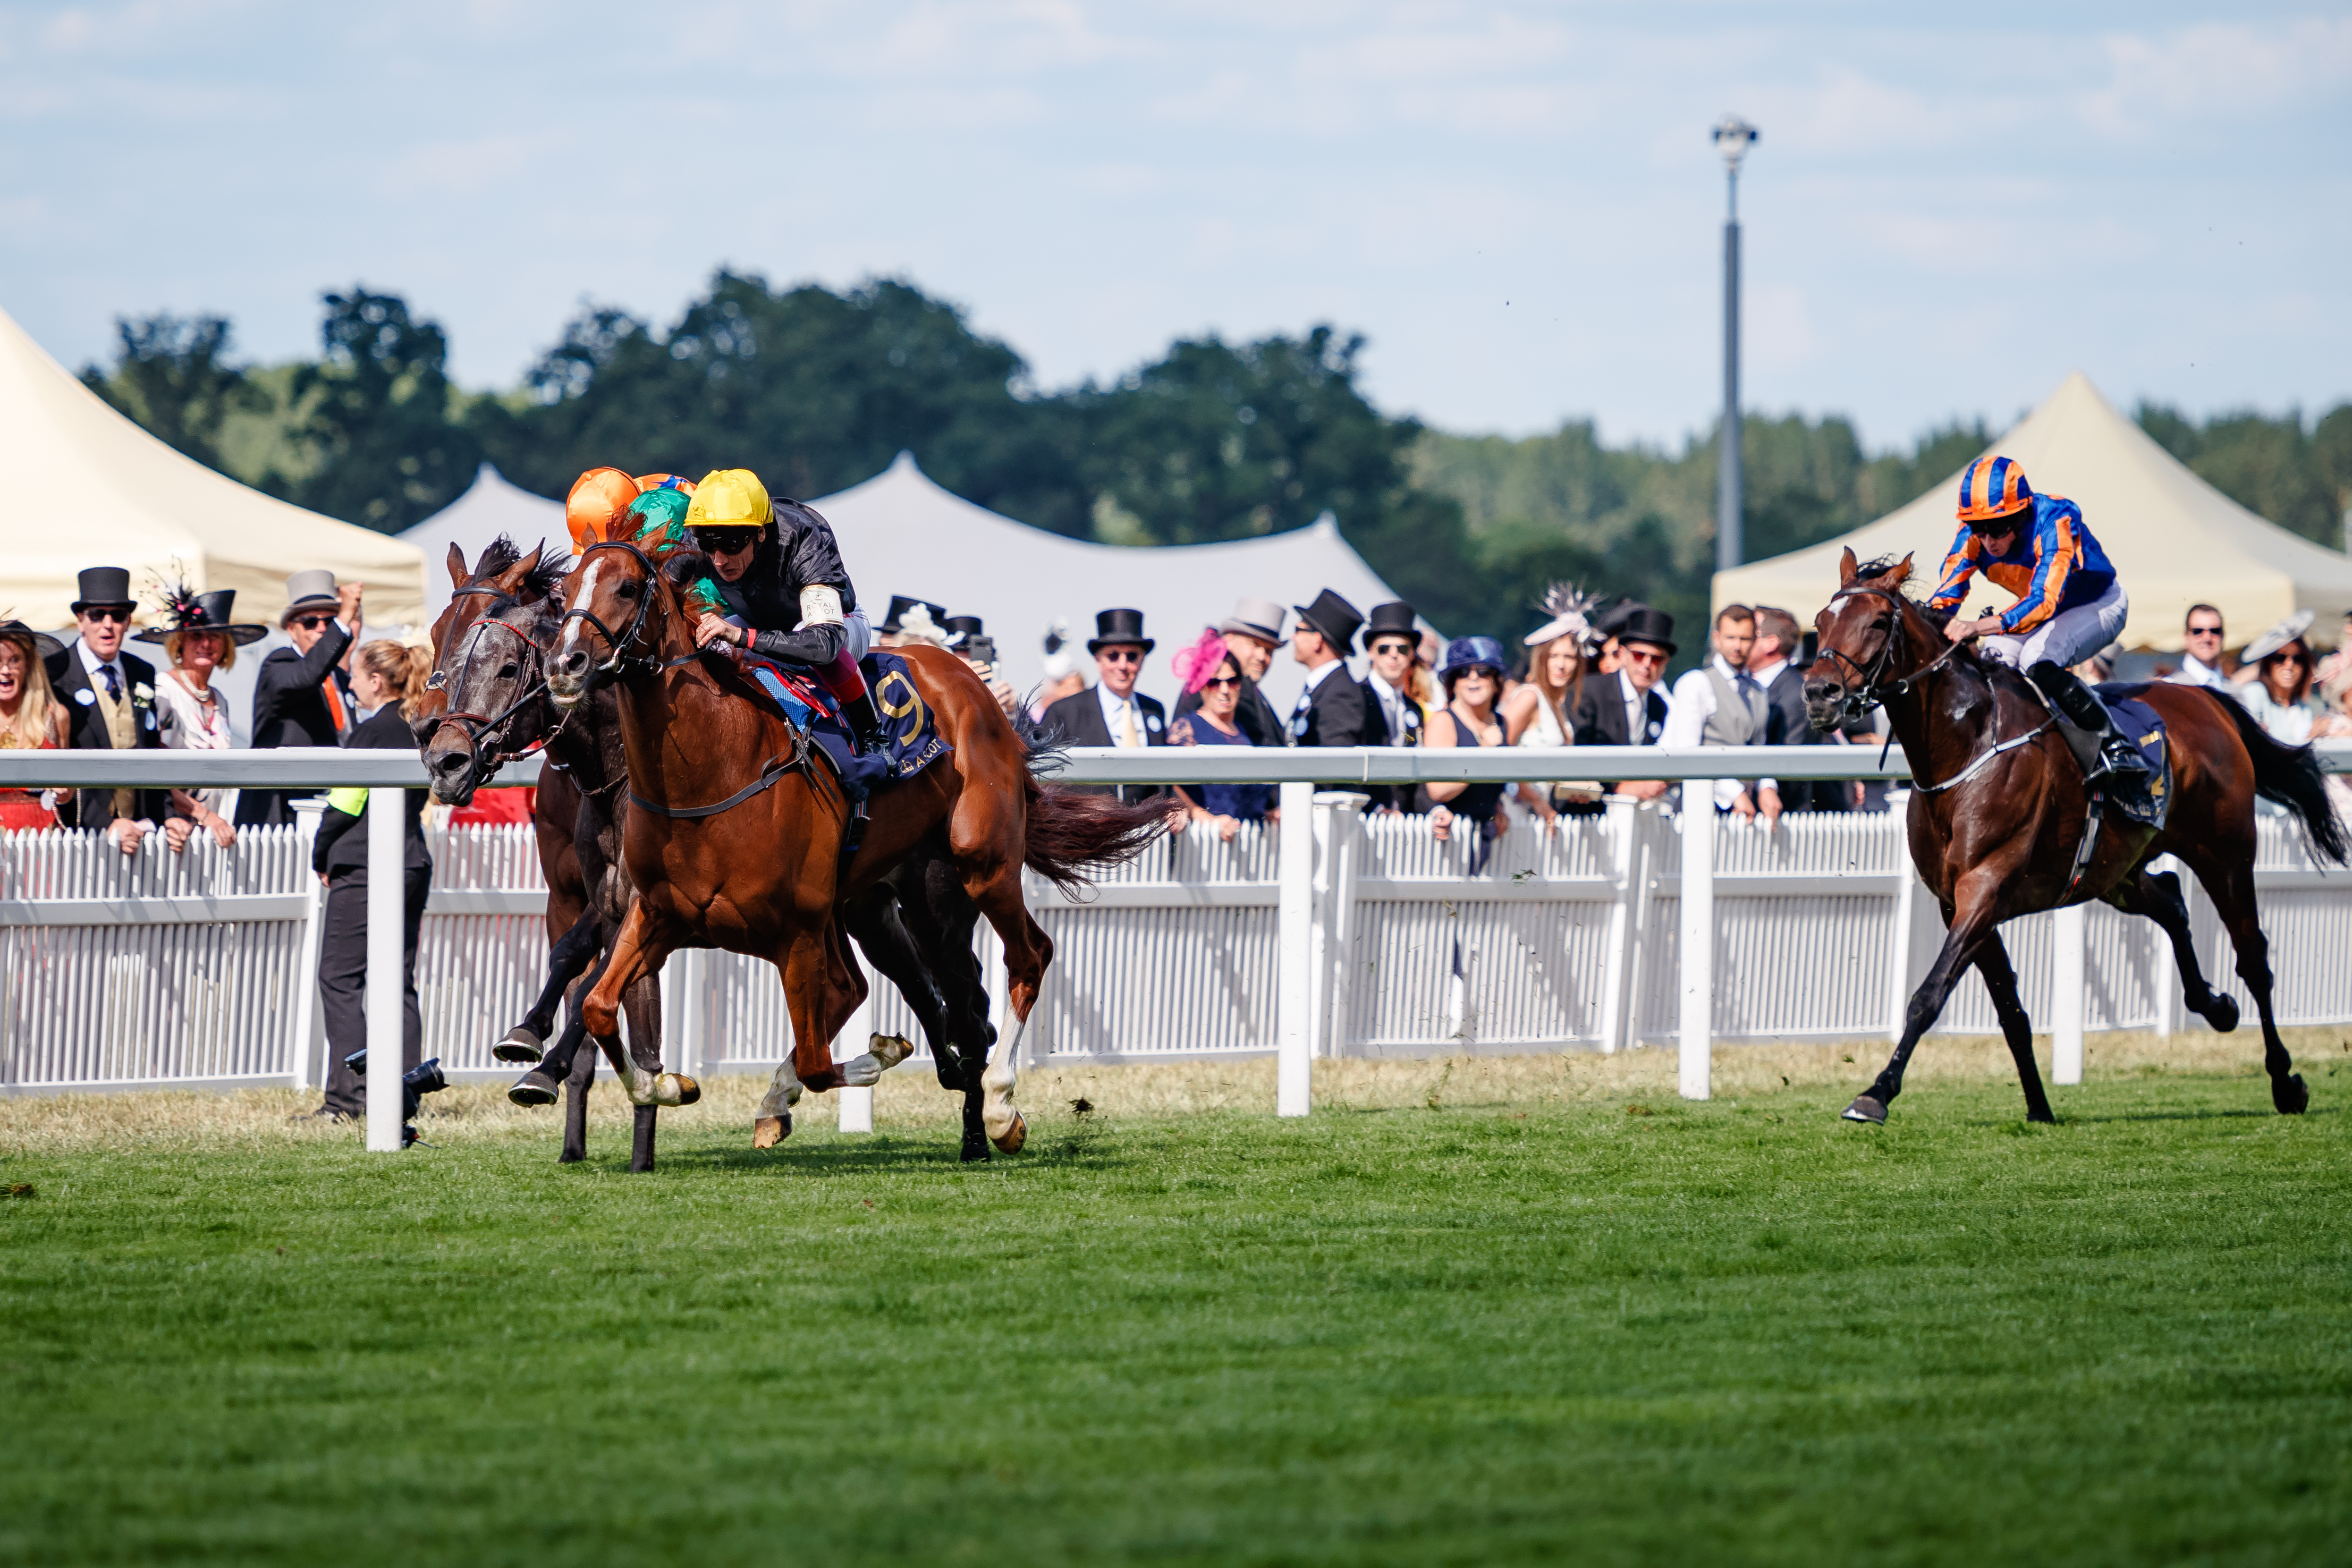 QATAR GOODWOOD CUP (GR1) - Stradivarius pour le doublé… et le million